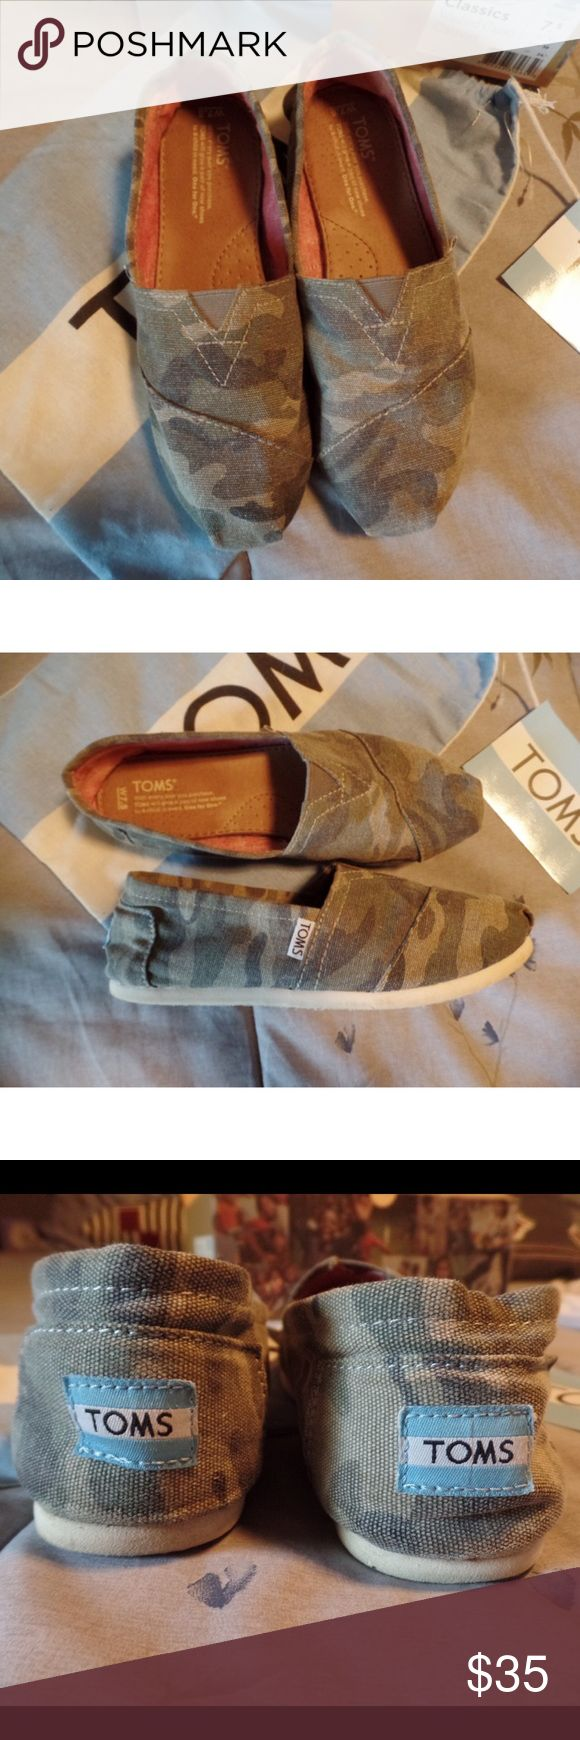 Camo TOMS - fits 8 Great condition camouflage TOMS. I wear size 8 and these fit me. Comes with original box, bag and sticker. TOMS Shoes